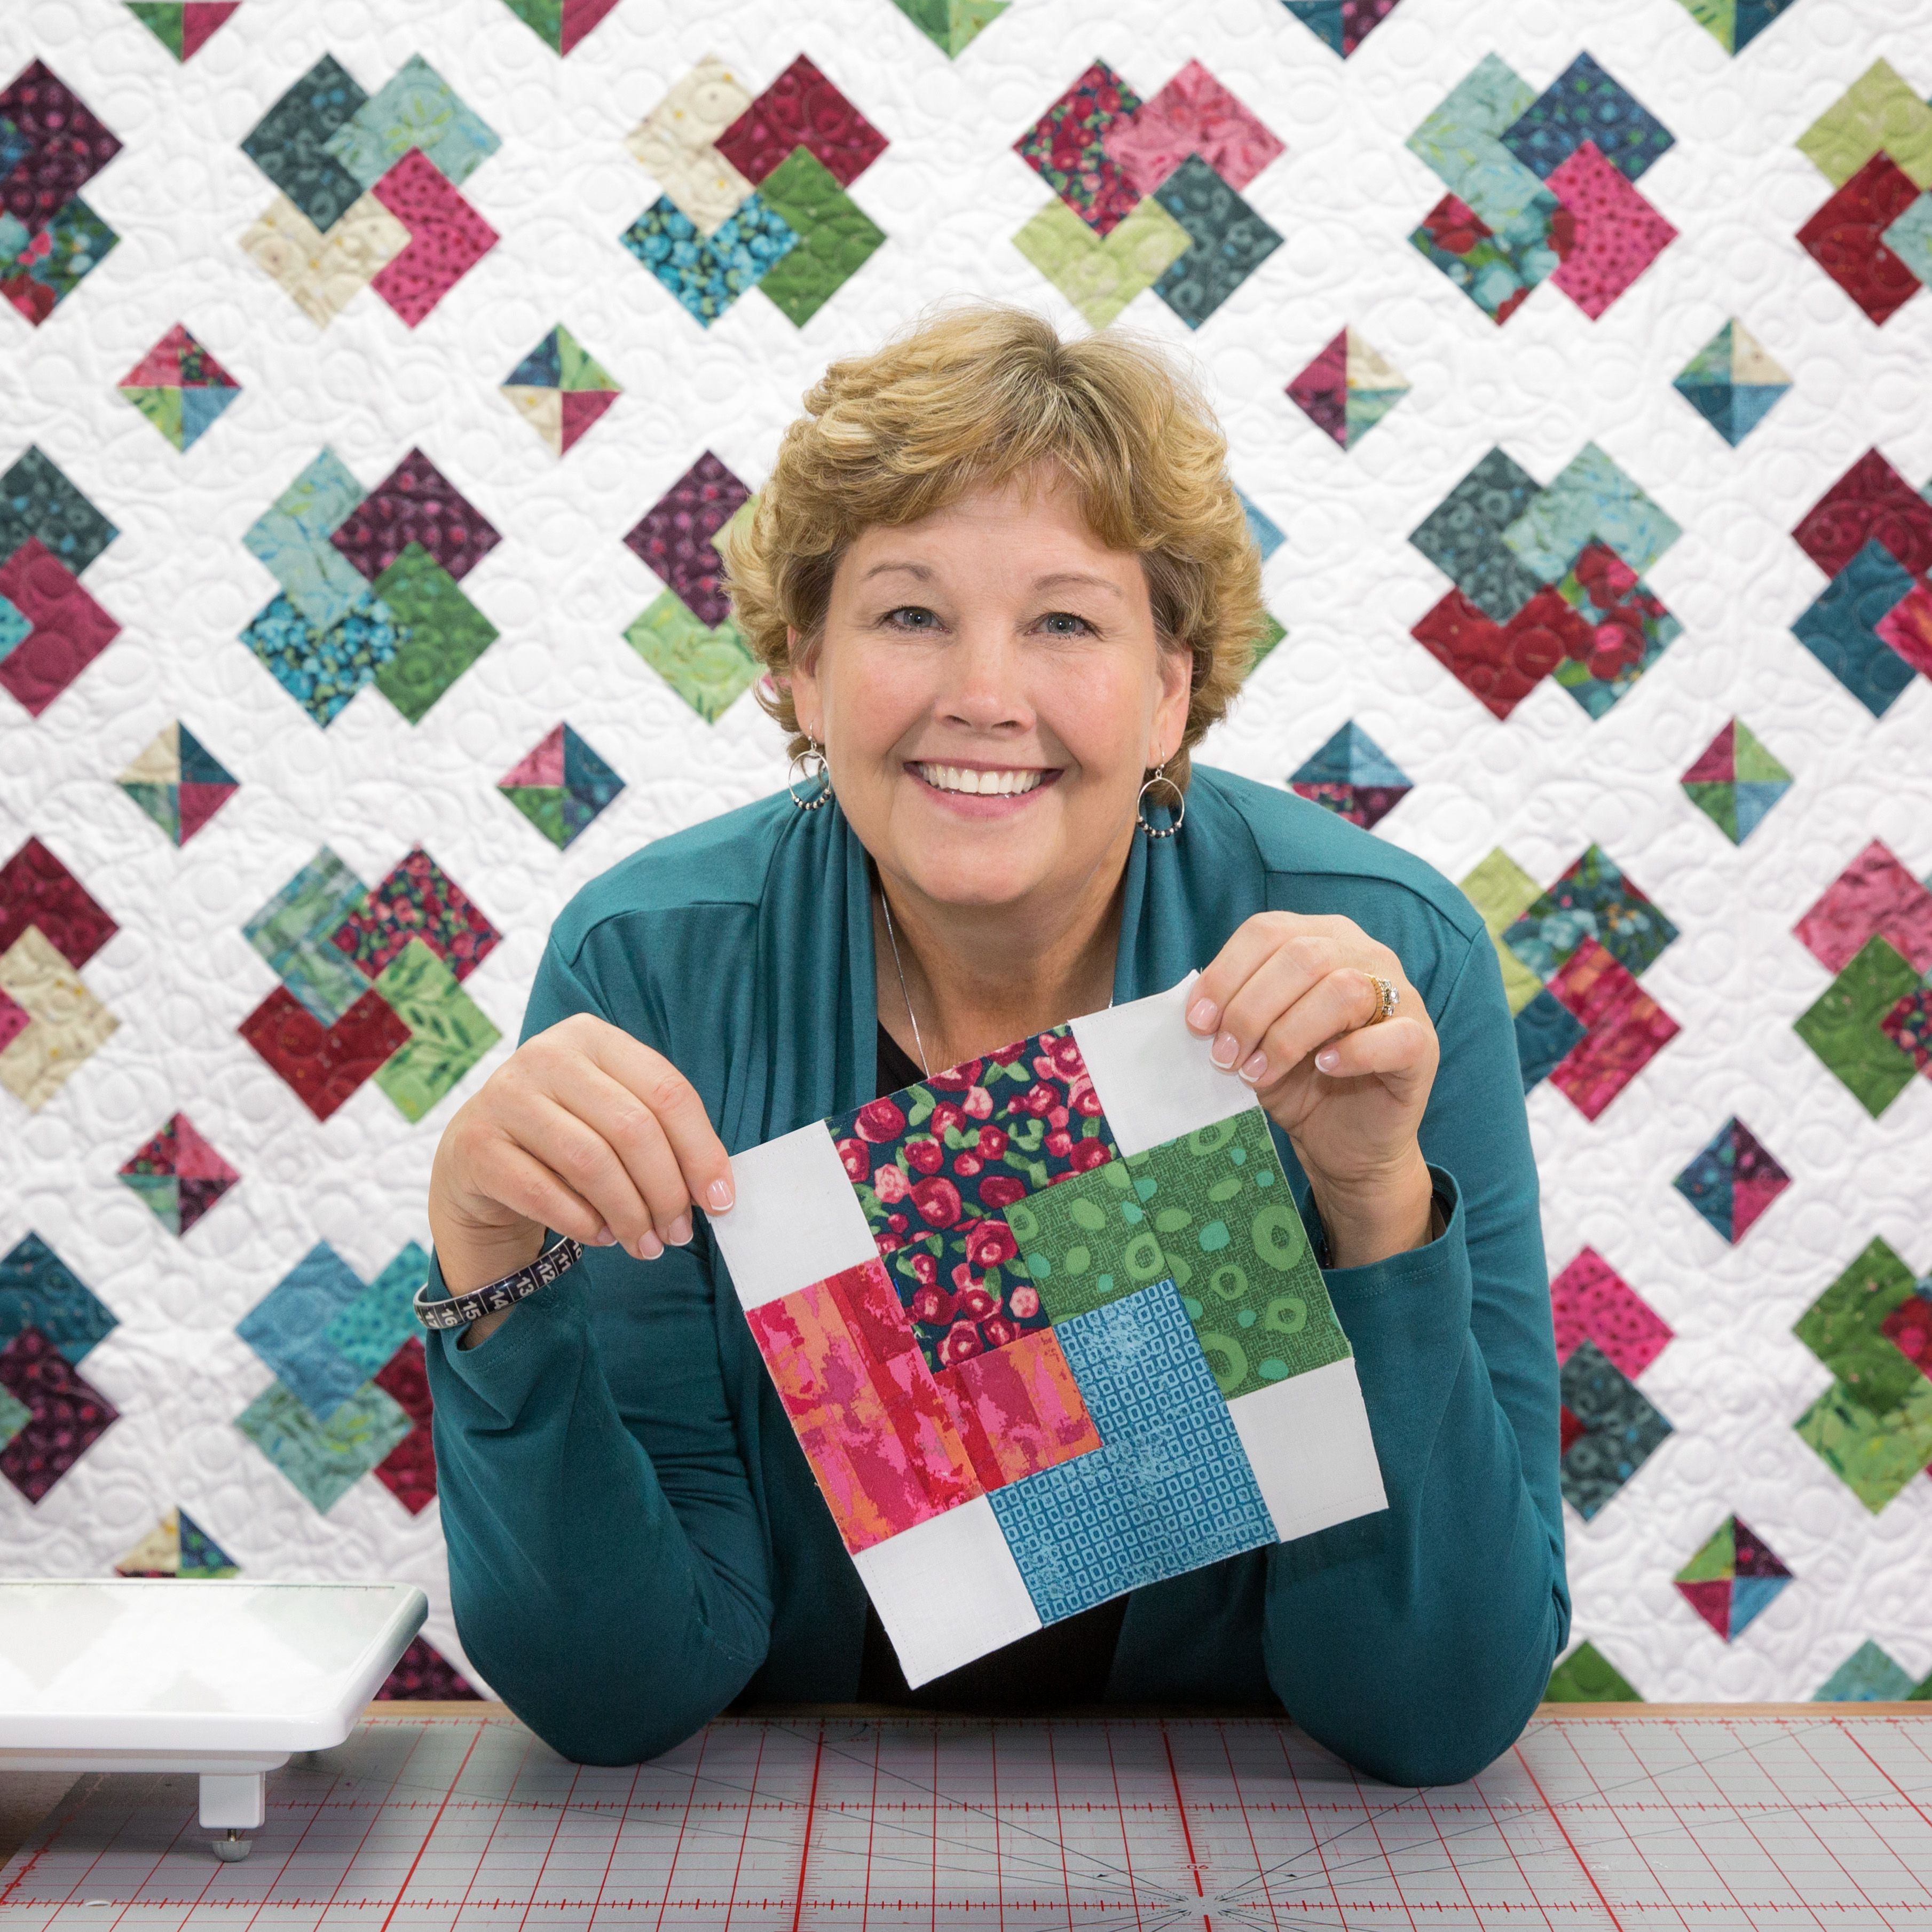 Jenny Has A Few Tricks Of Her Own To Make Her Version Of The Card Tr Missouri Quilt Tutorials Missouri Star Quilt Company Tutorials Missouri Star Quilt Company